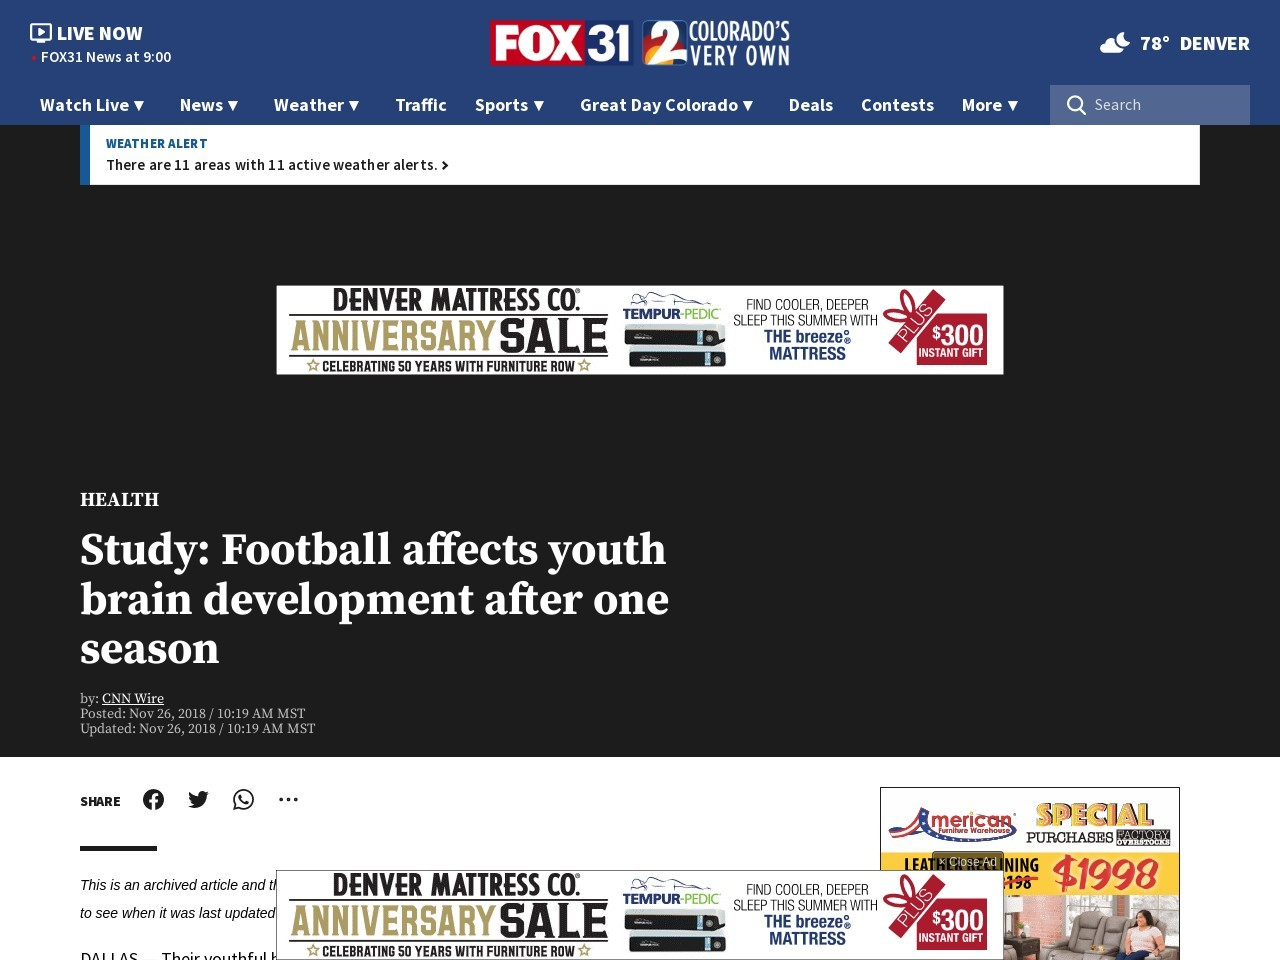 Study: Football affects youth brain development after one season